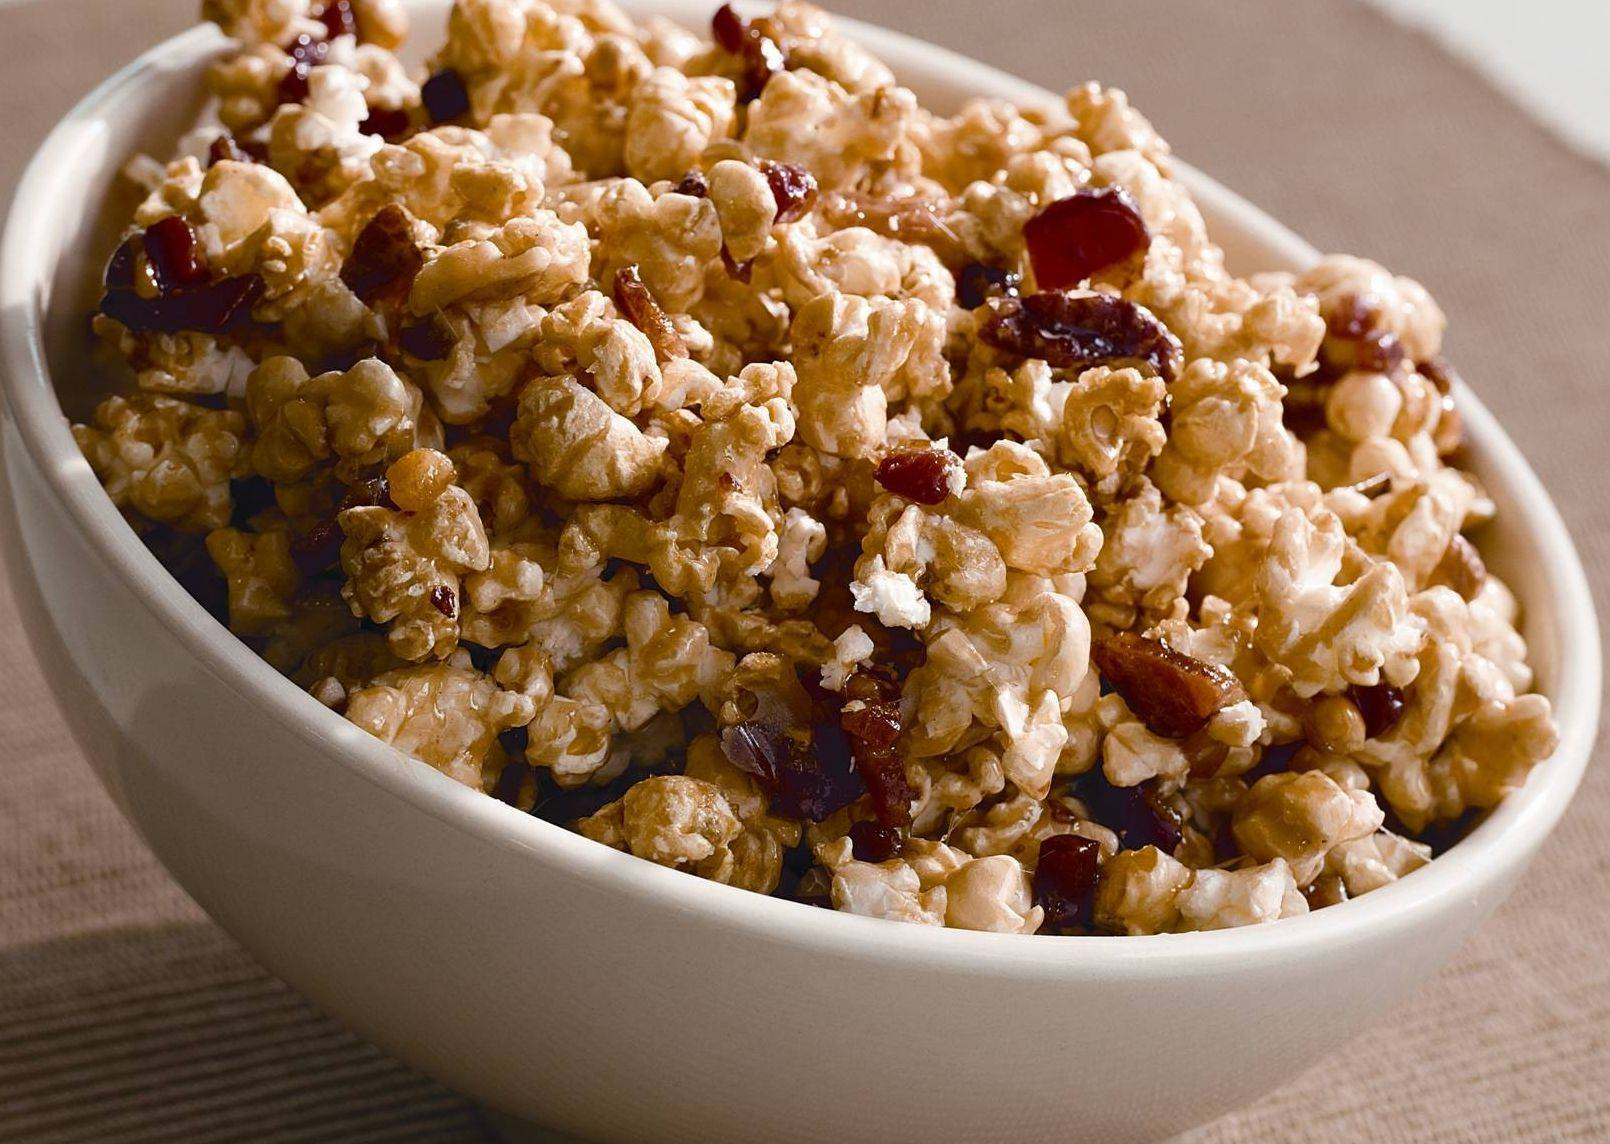 Domino Rosi, of Lombard, tweaked his mother's caramel corn recipe and won $1,000 in a Hungry Jack recipe contest.